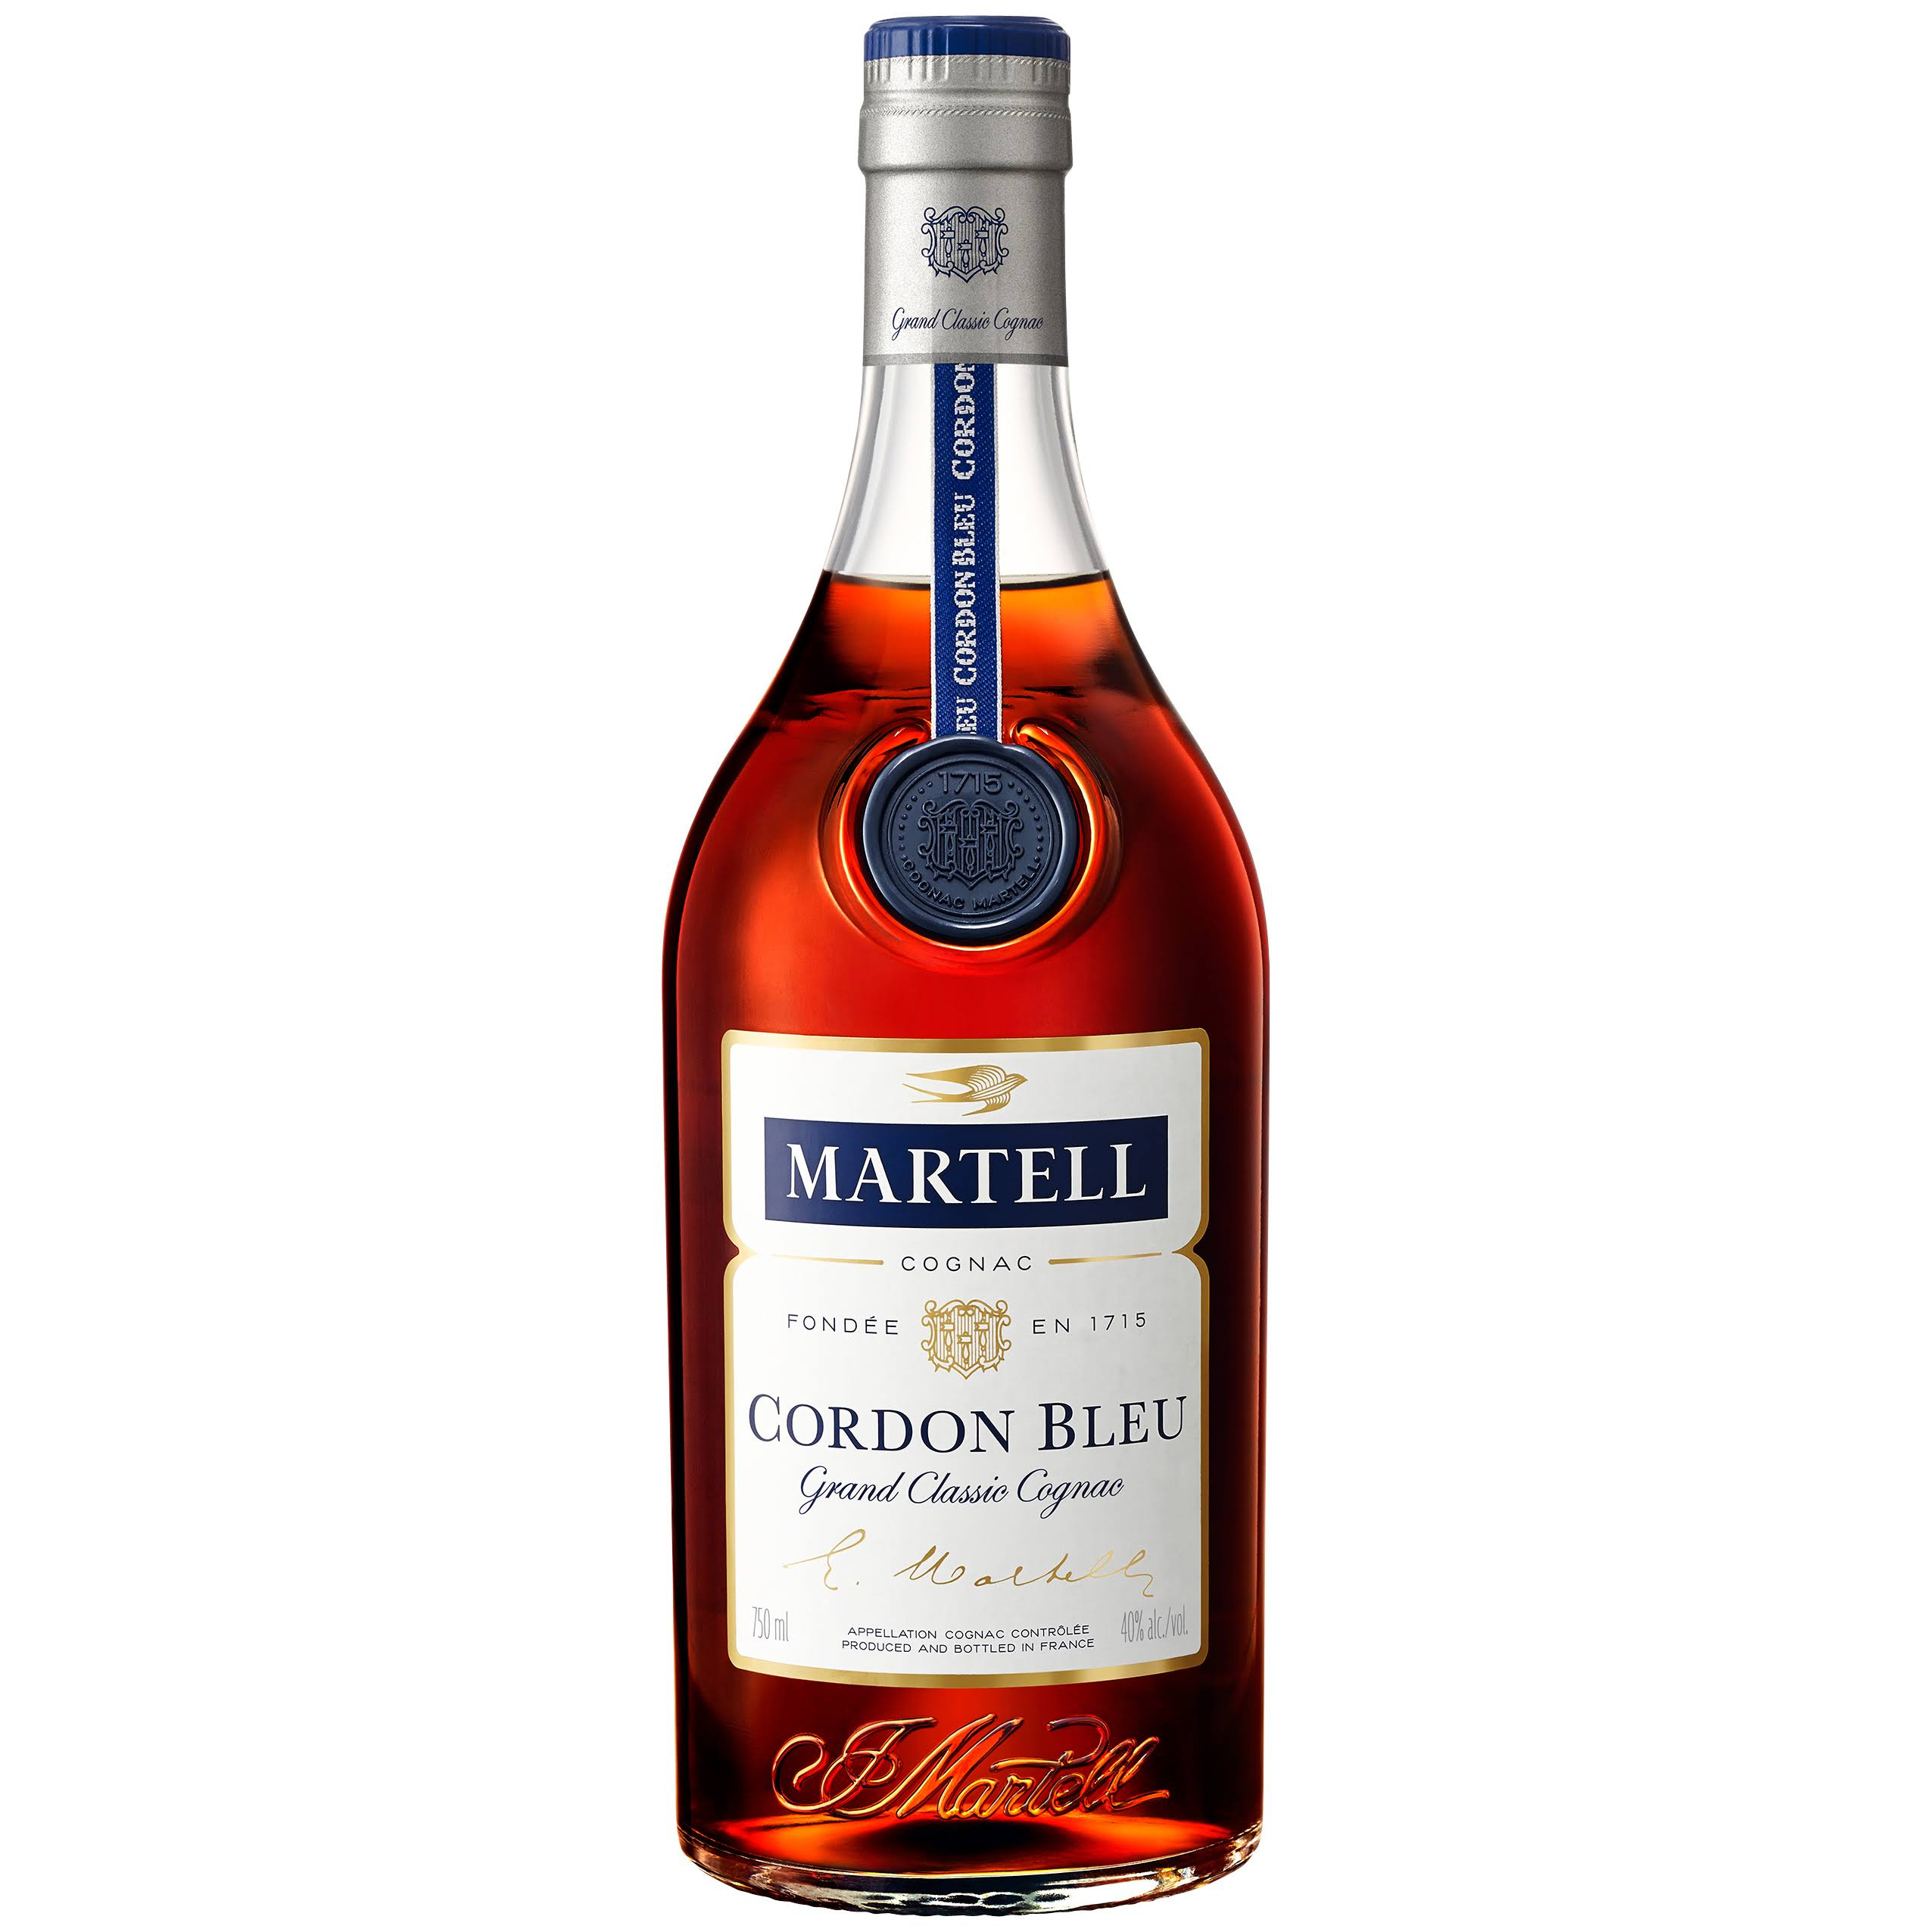 Martell Cognac France Cordon Bleu 750ml Bottle